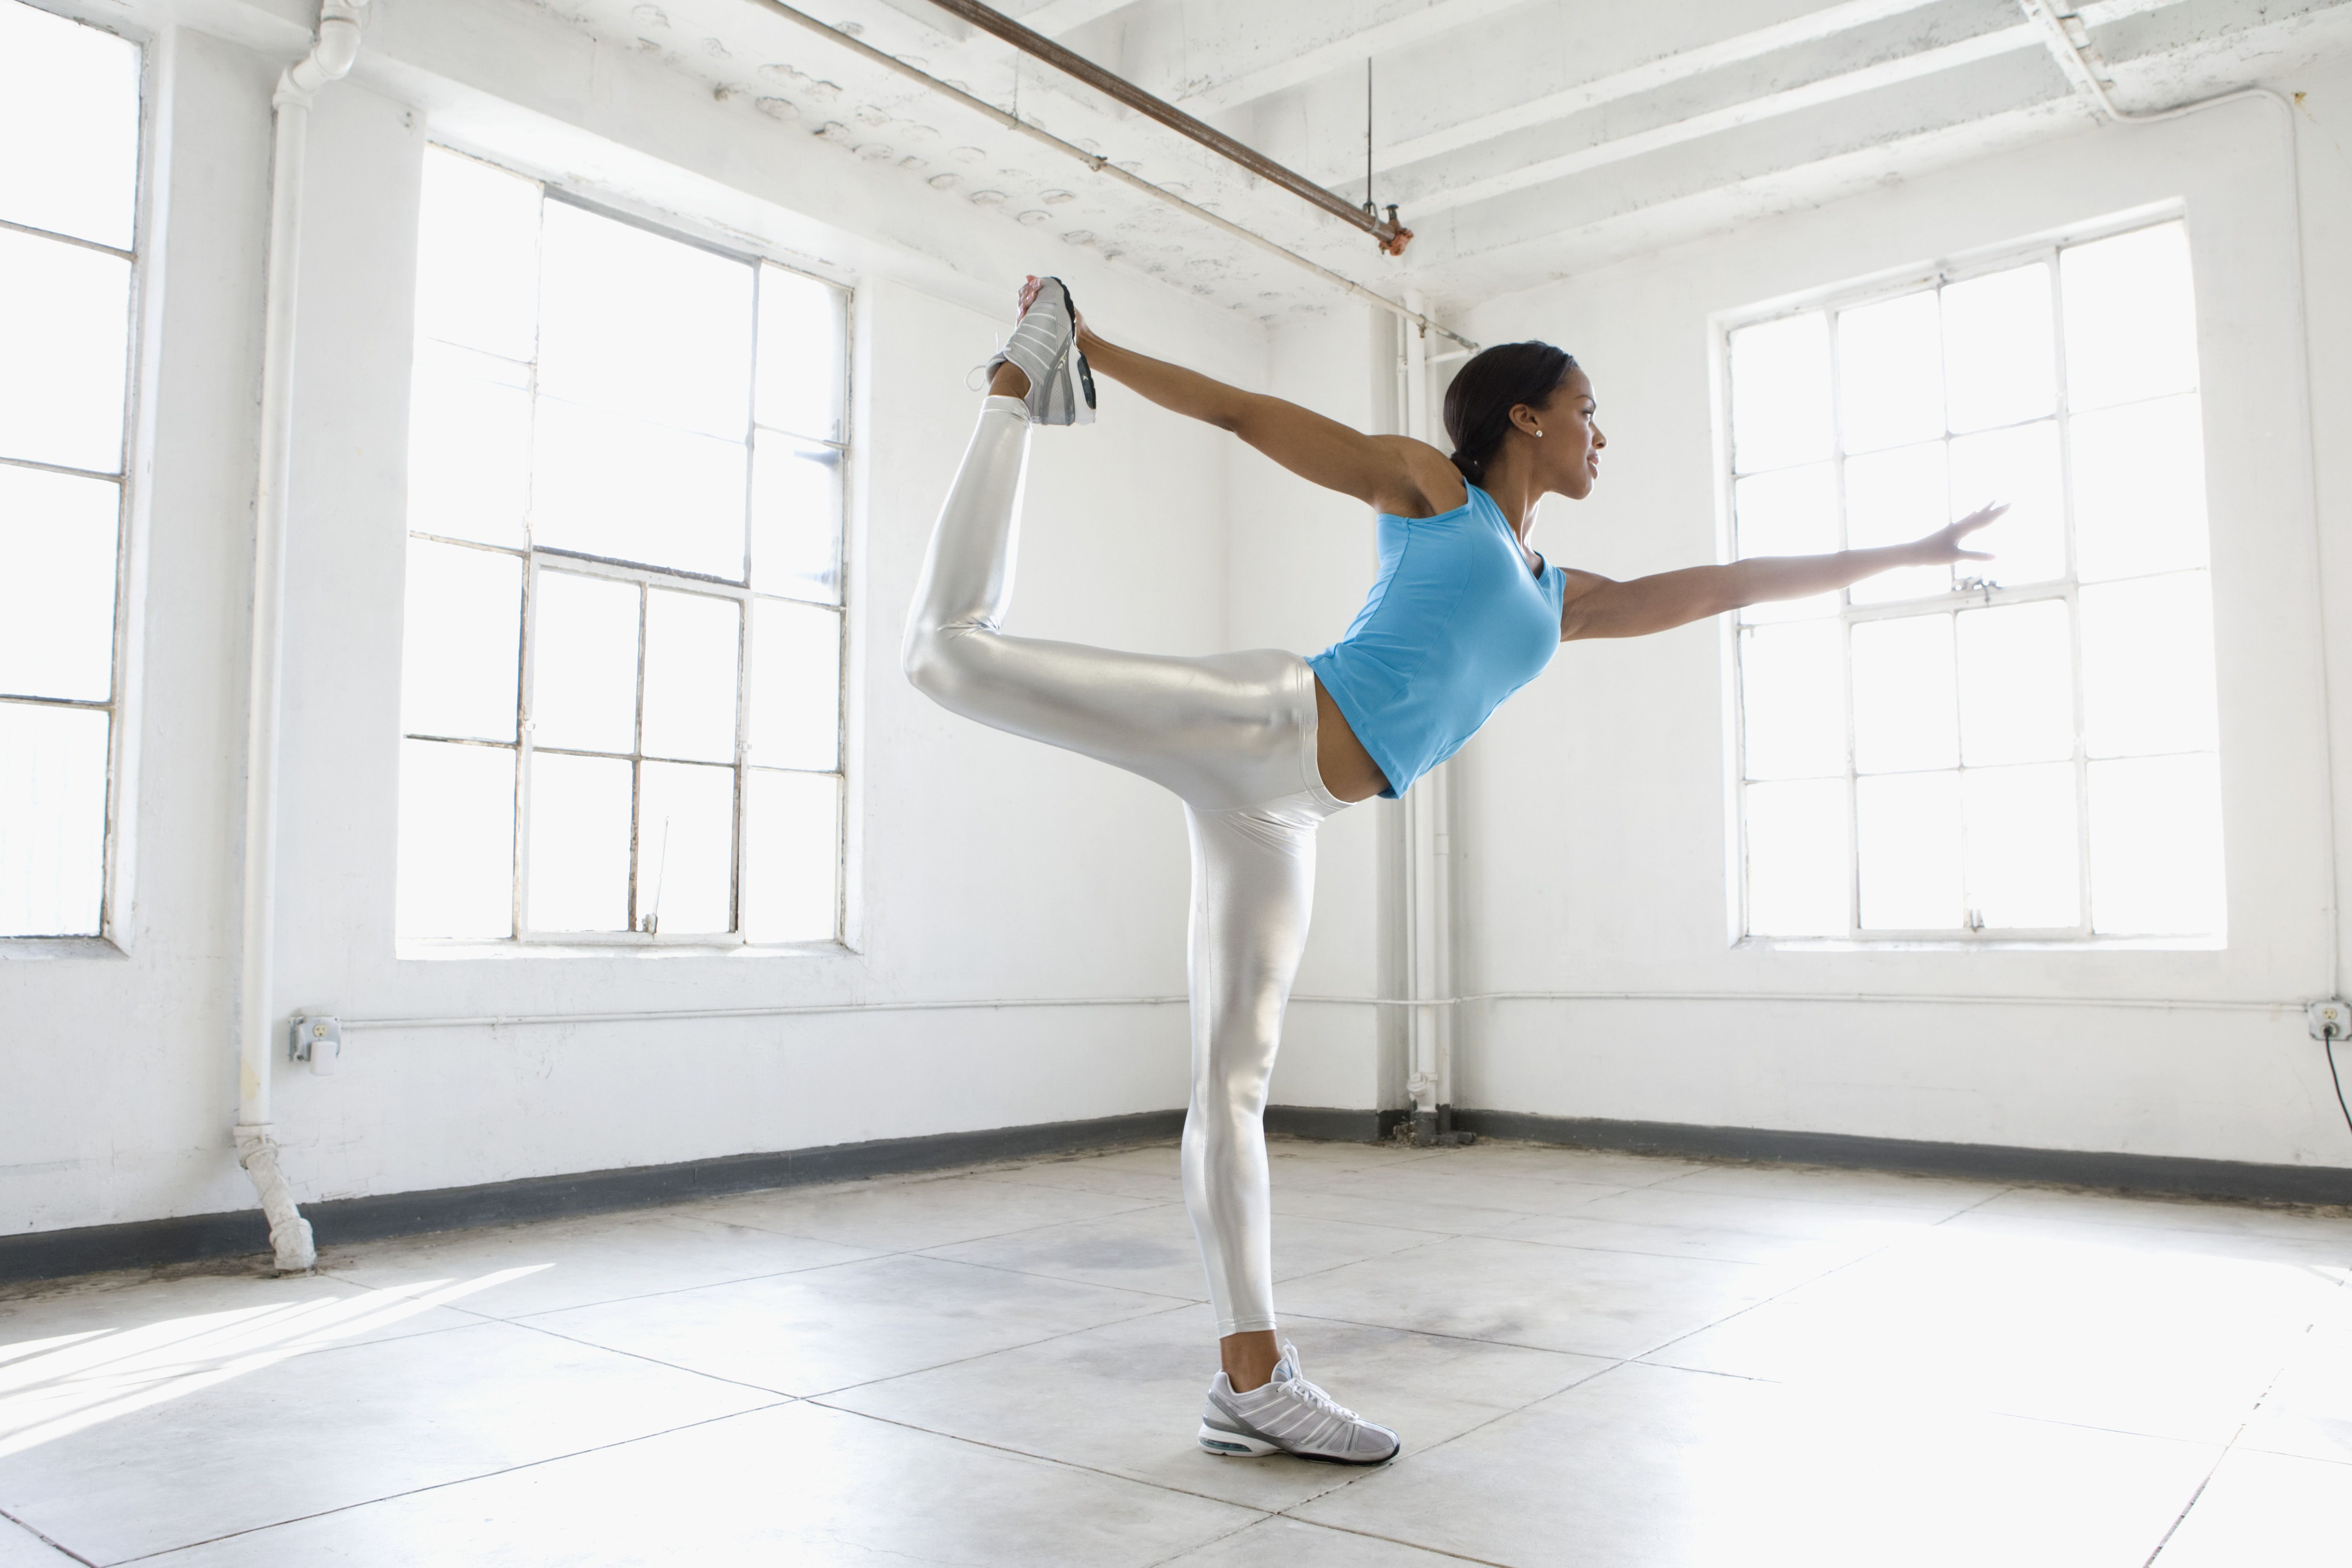 15 Hip Opening Yoga Poses Best Stretches For Tight Hips